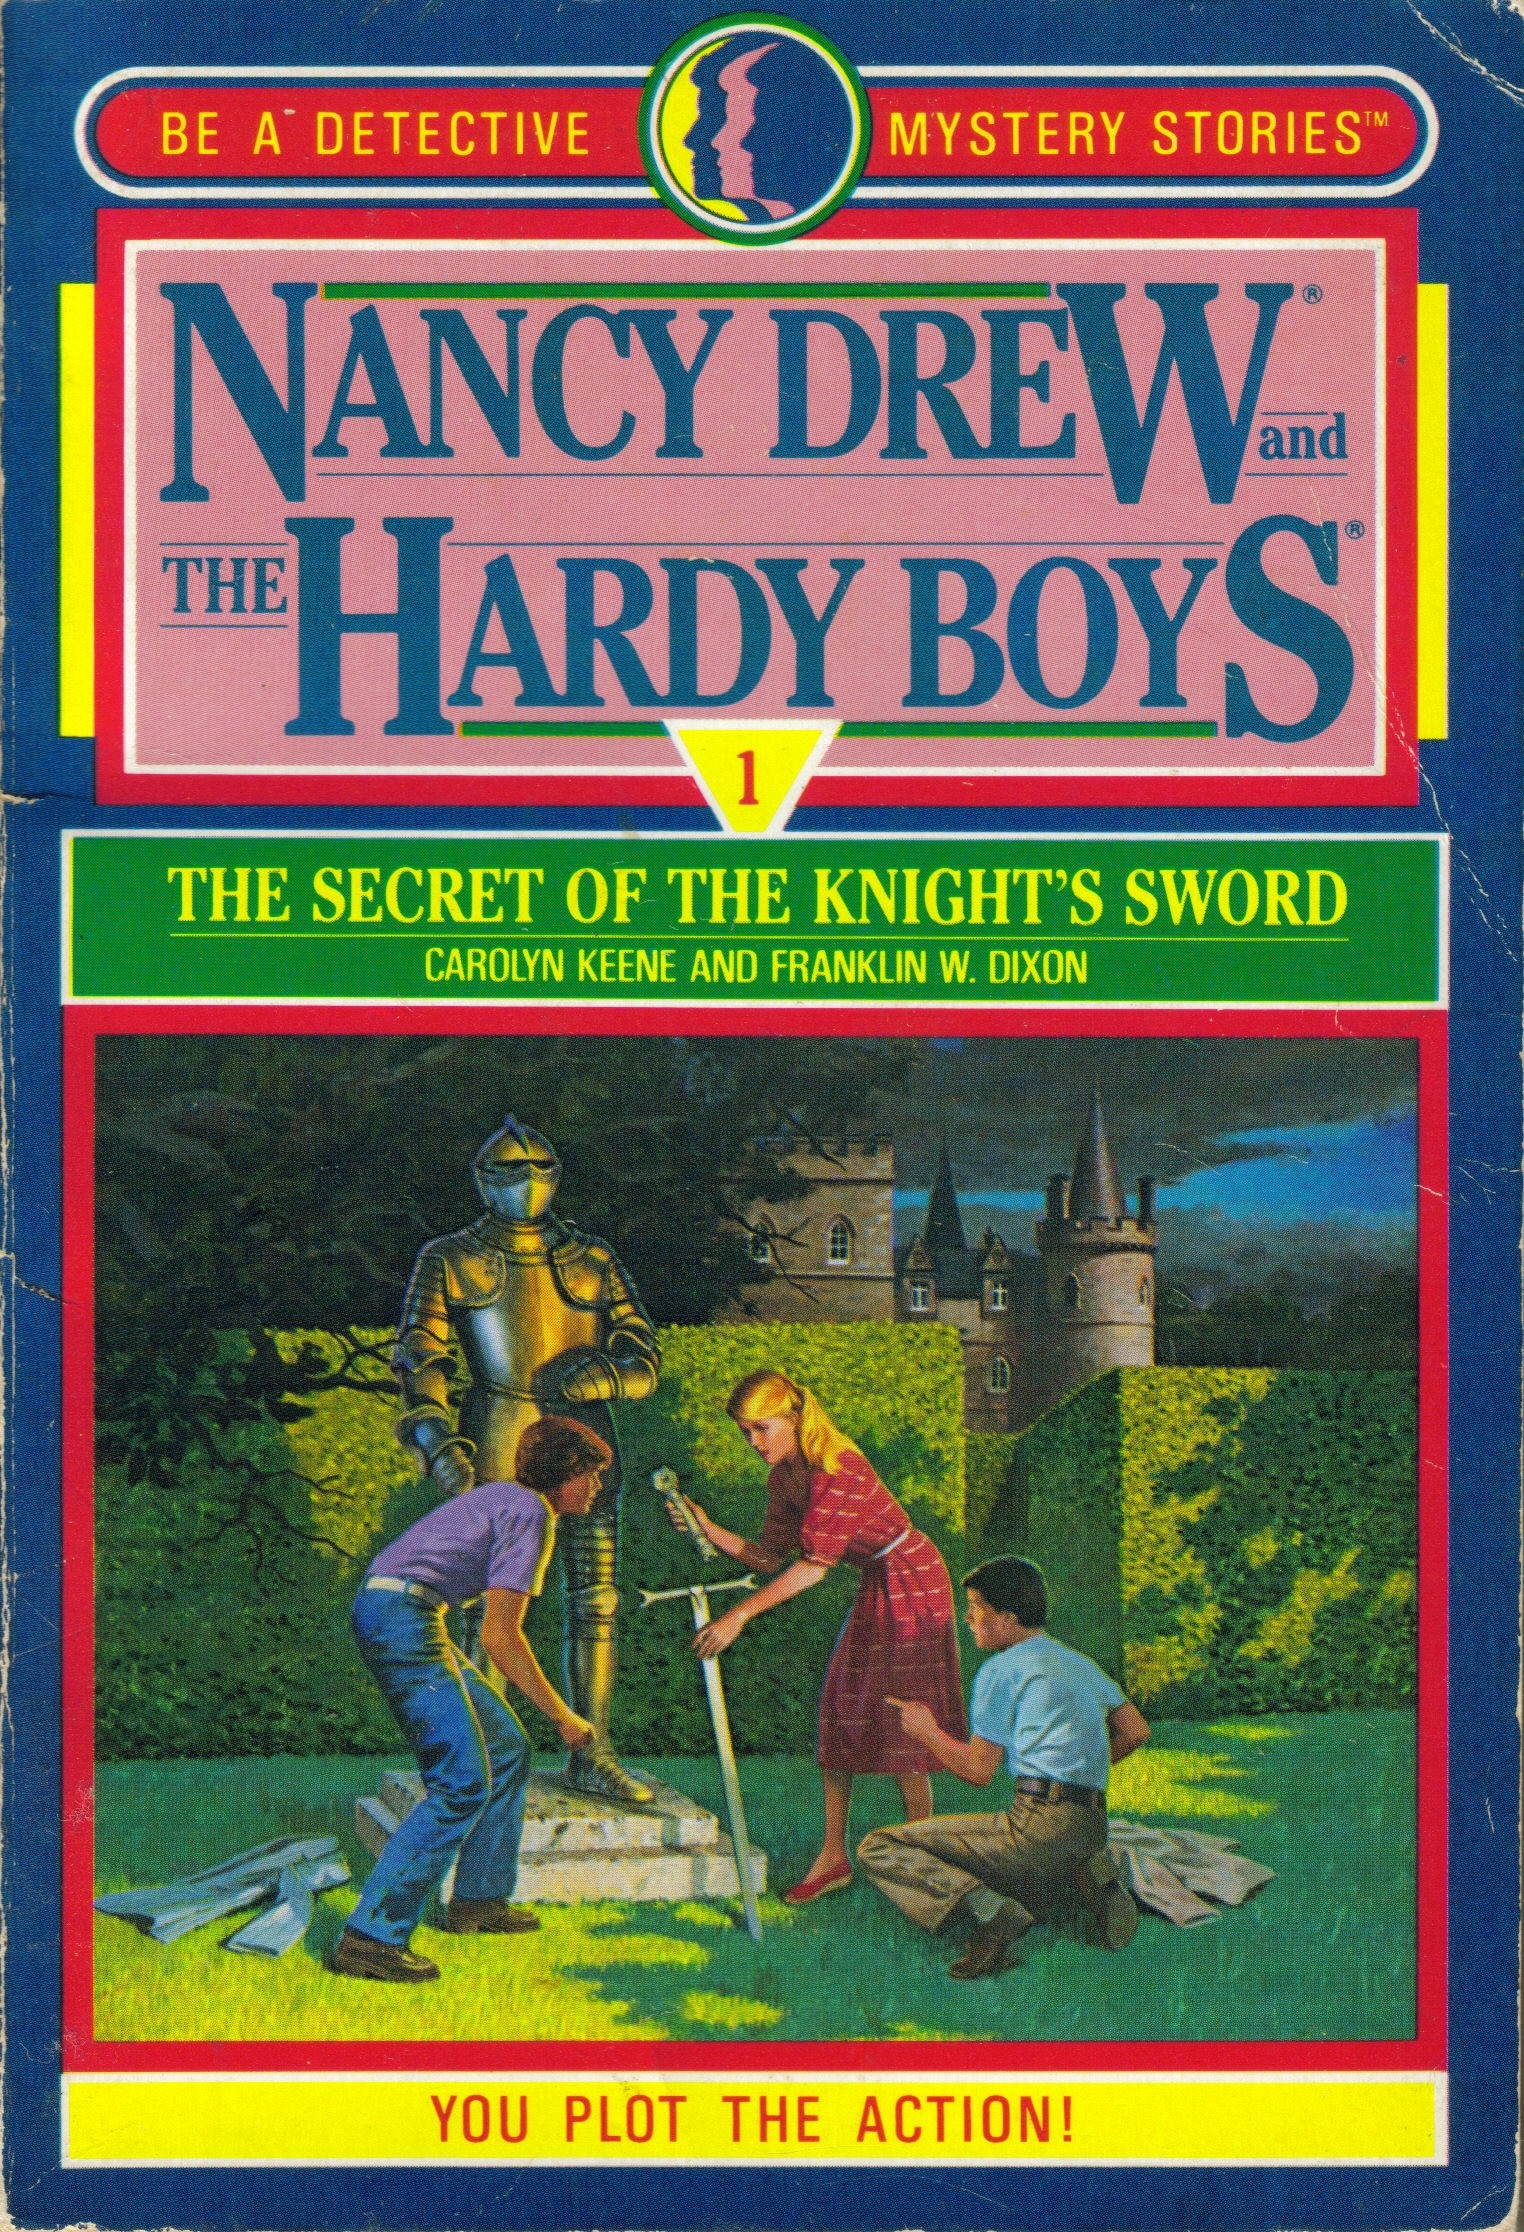 001 The Secret of the Knight's Sword.jpg